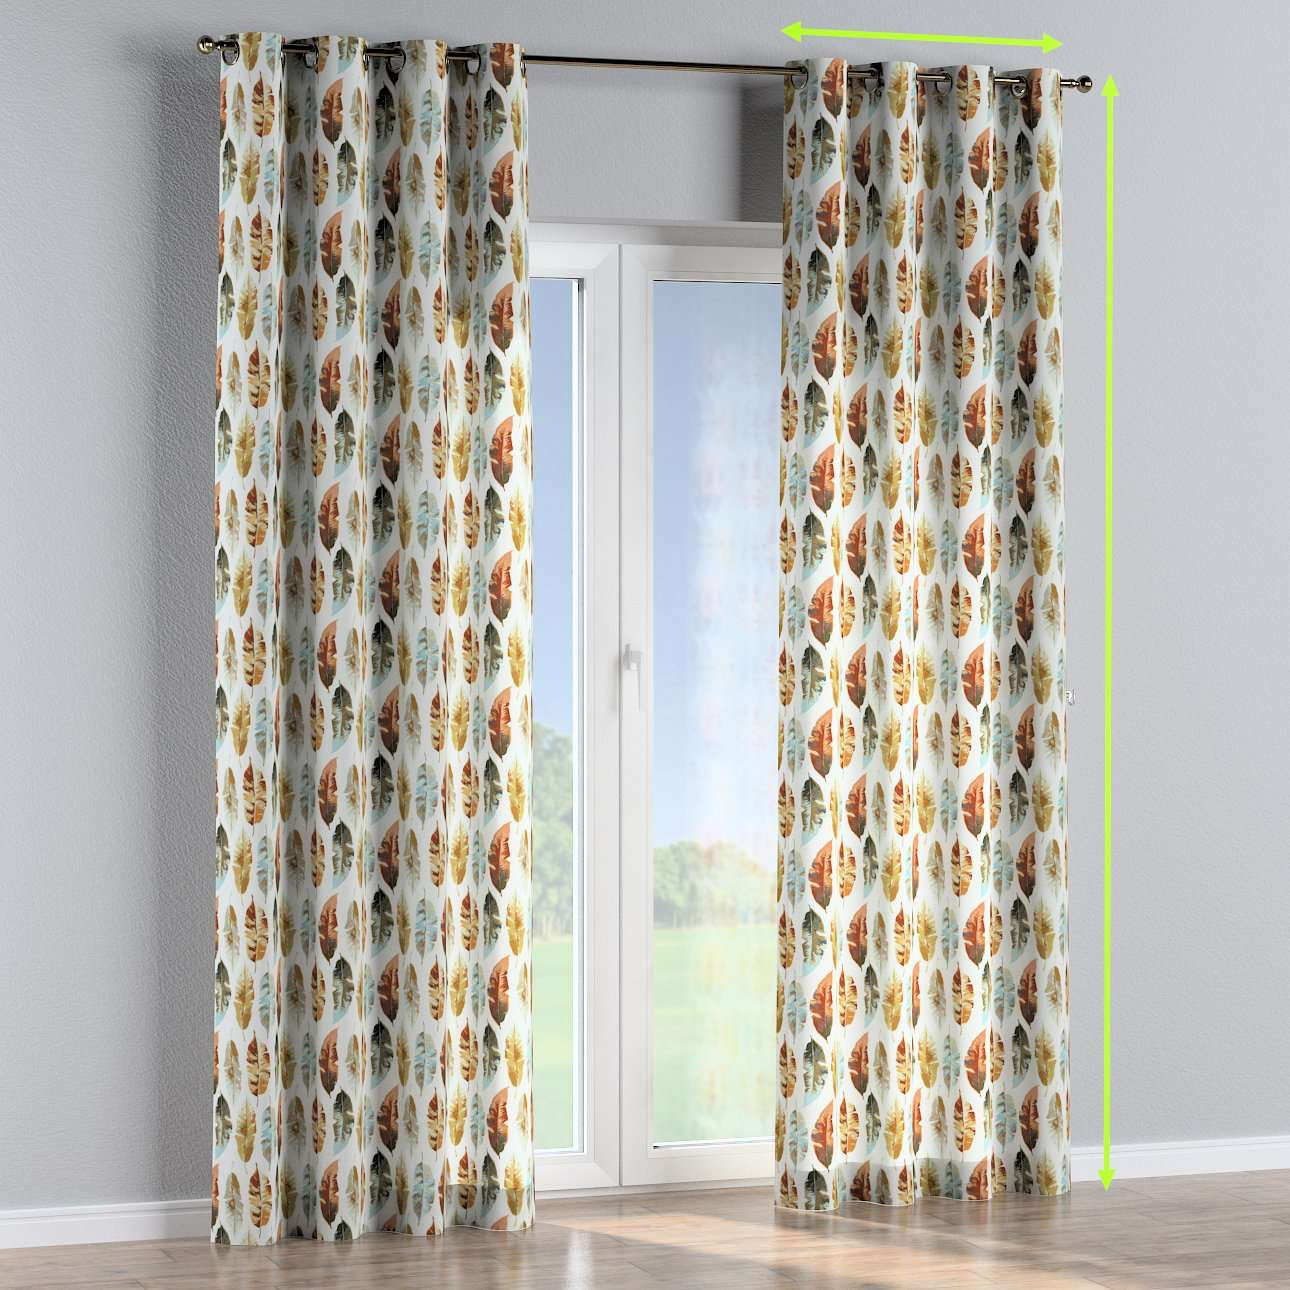 Eyelet lined curtains in collection Urban Jungle, fabric: 141-43